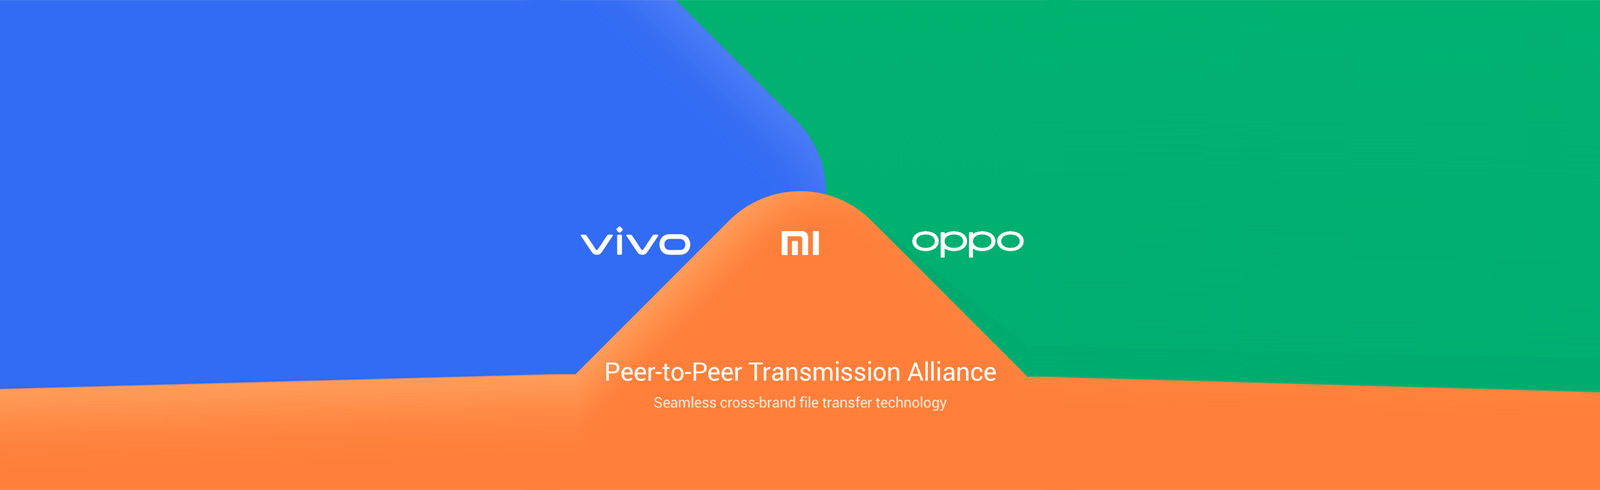 Xiaomi, Oppo and Vivo create a new wireless file transfer system